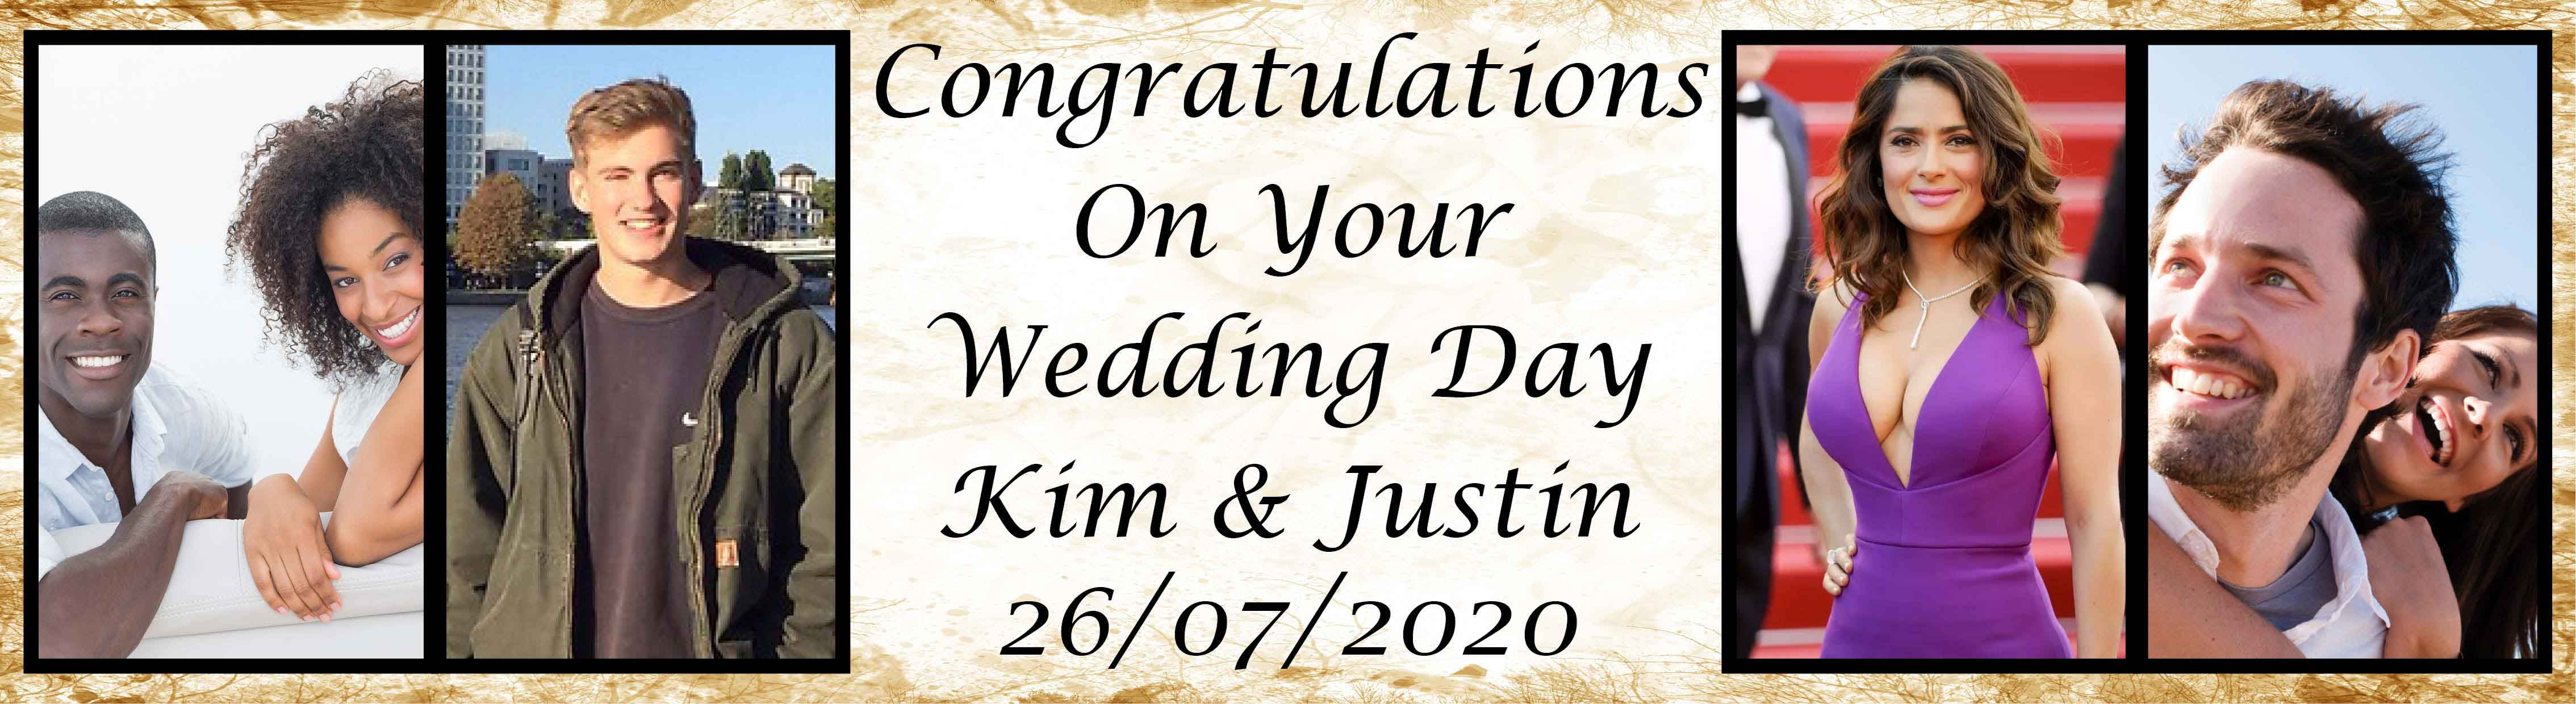 Wedding Day Banner 8